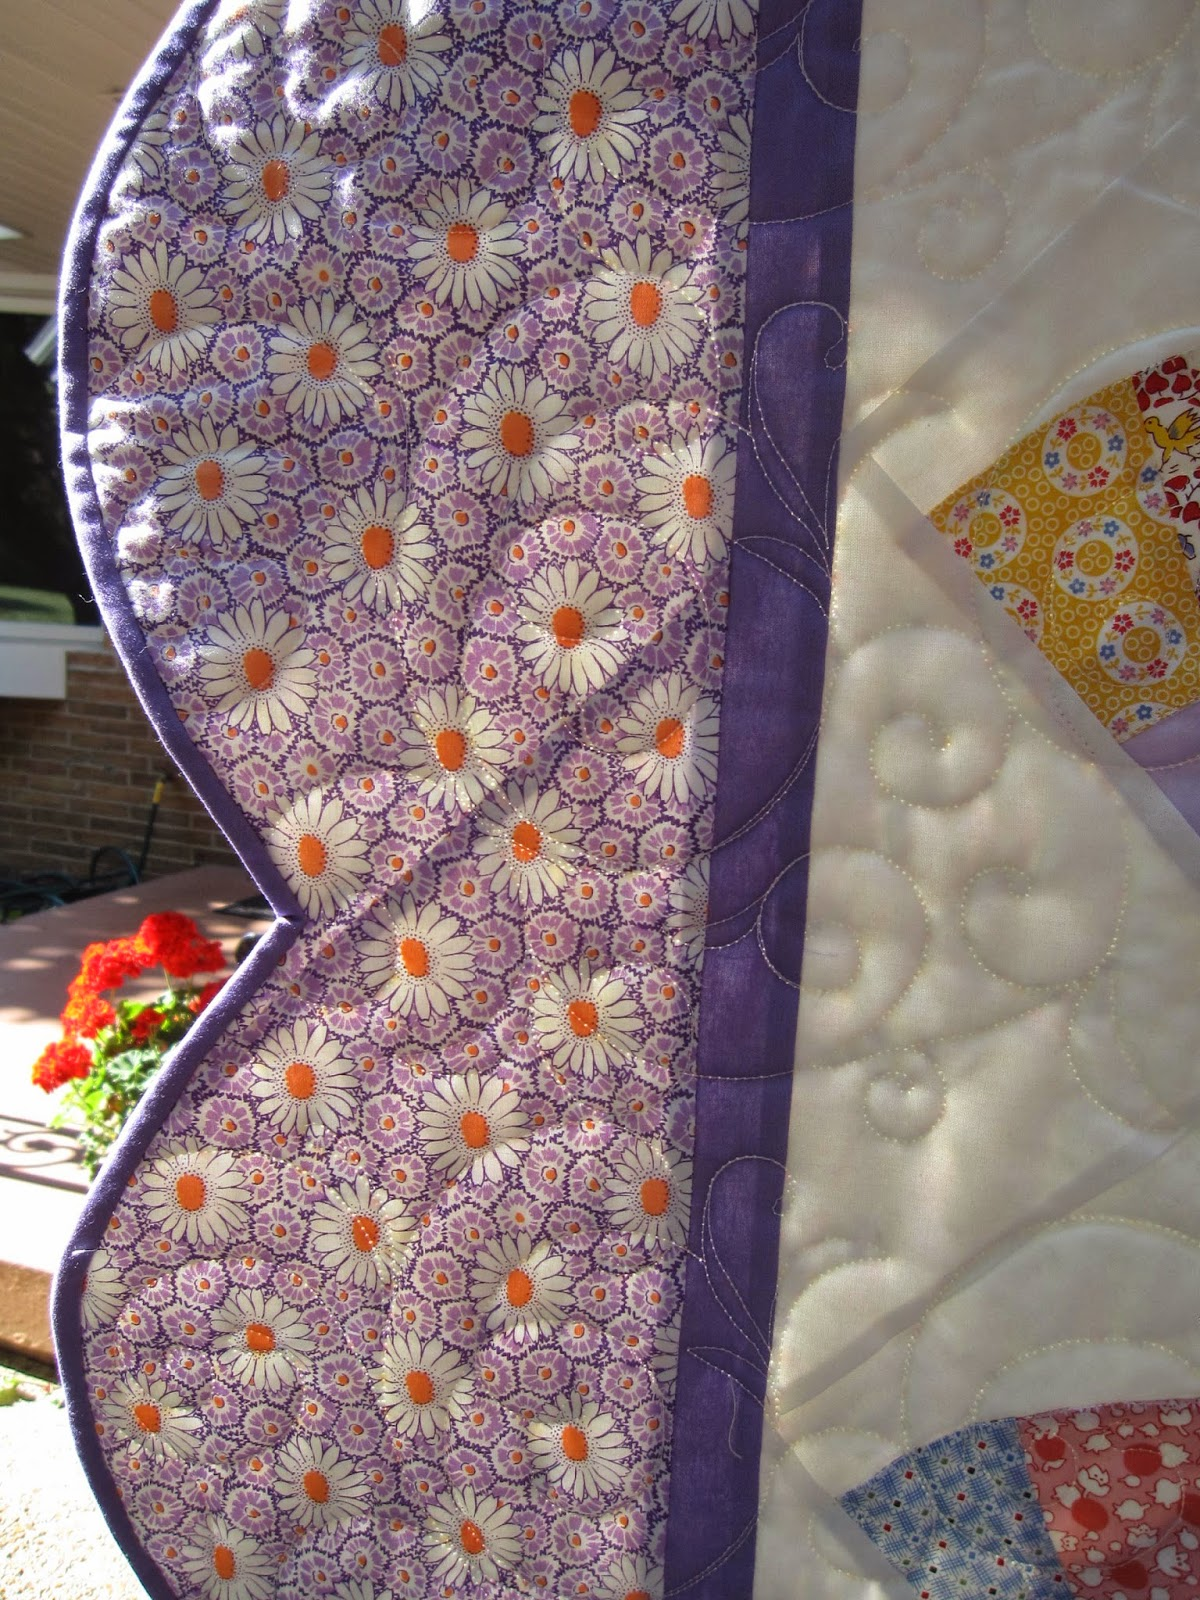 Quilt with scalloped edge